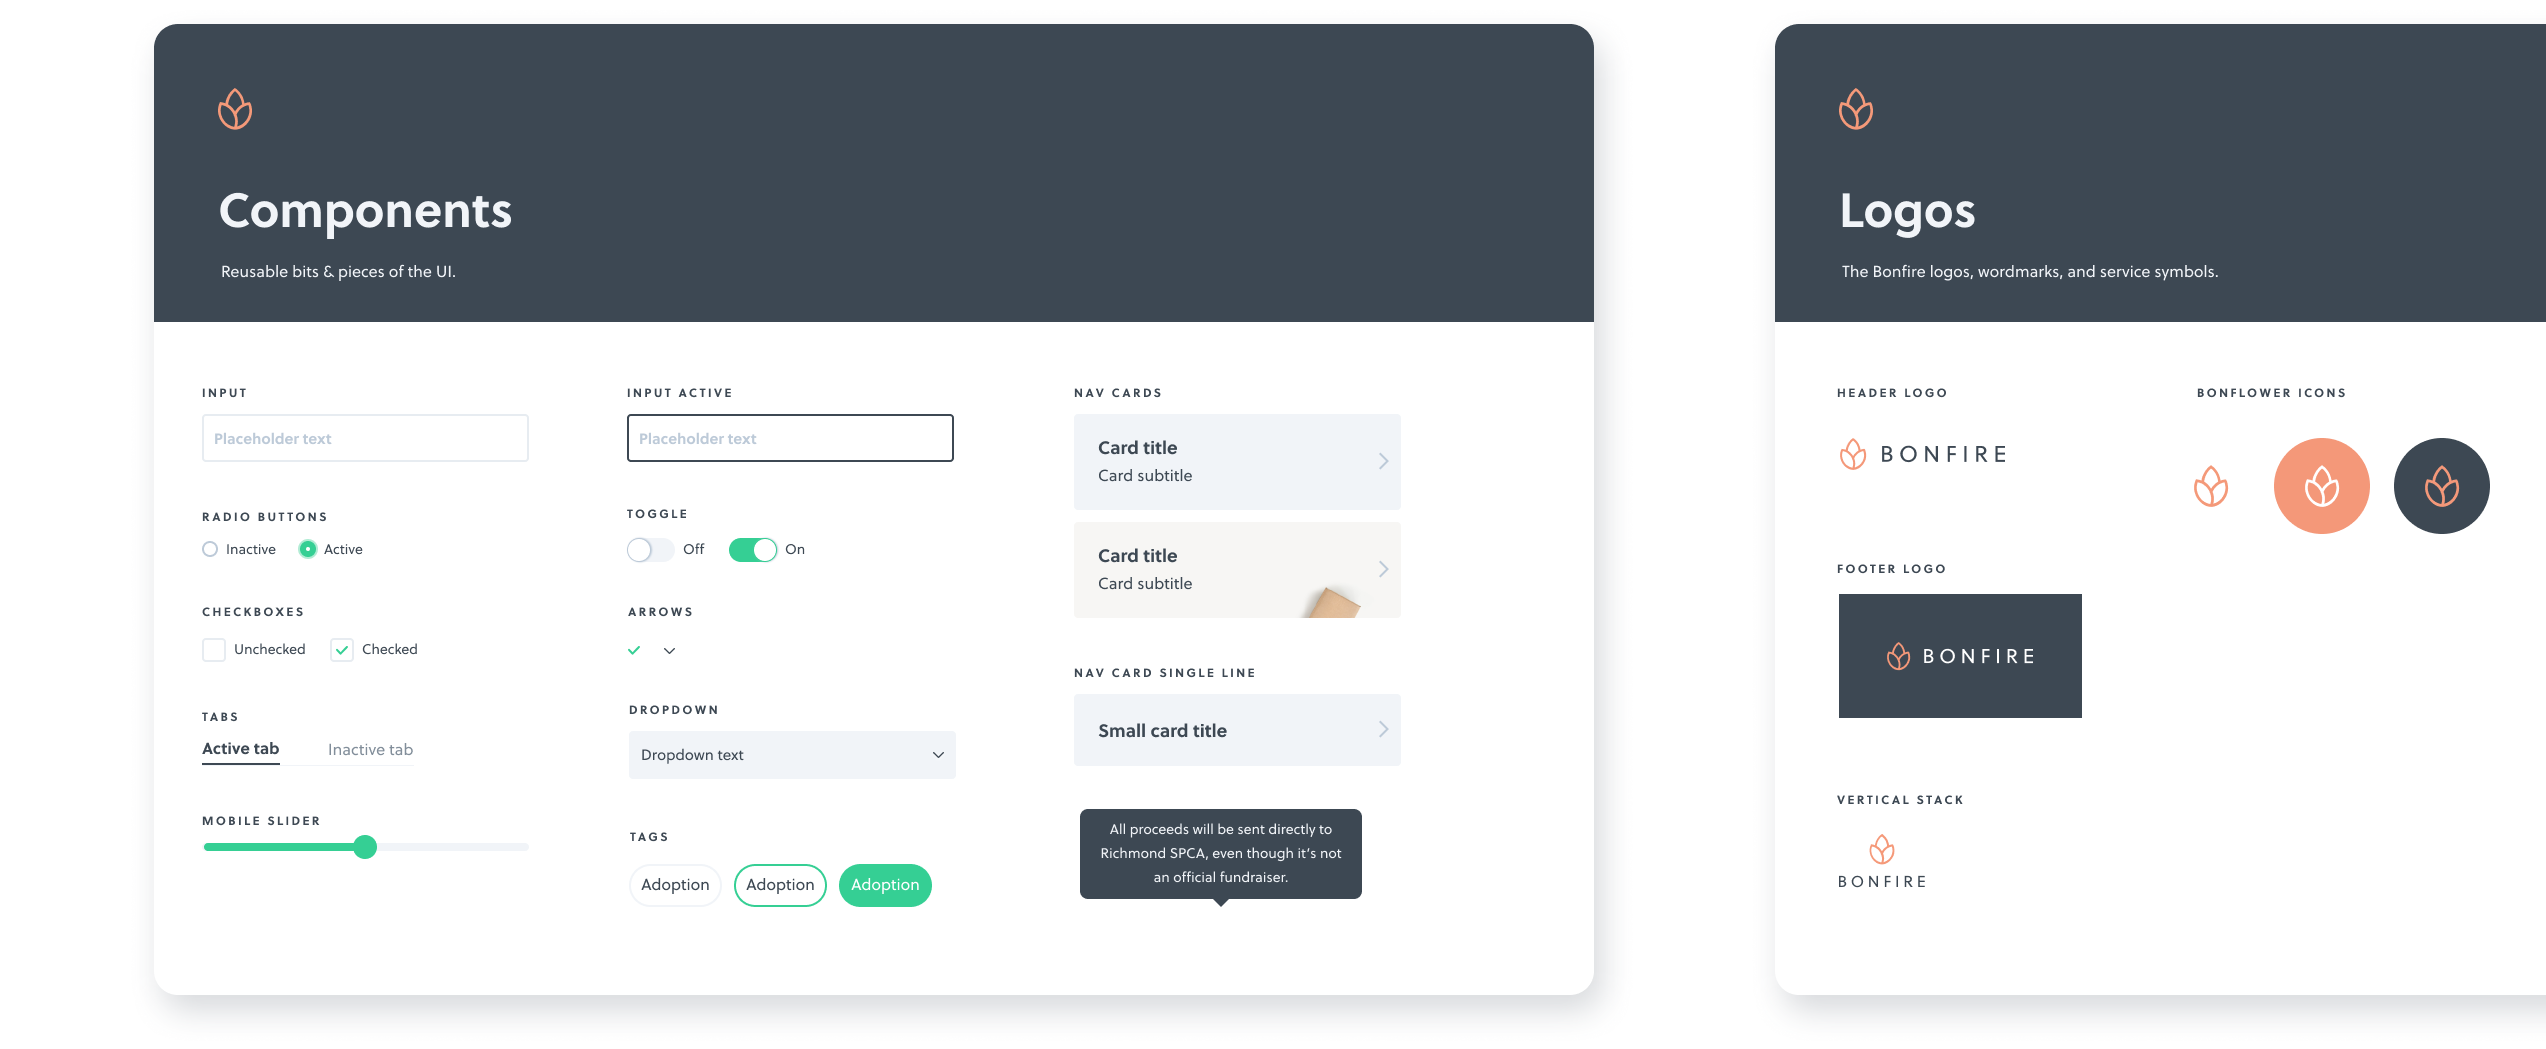 A screenshot of a digital product design component library